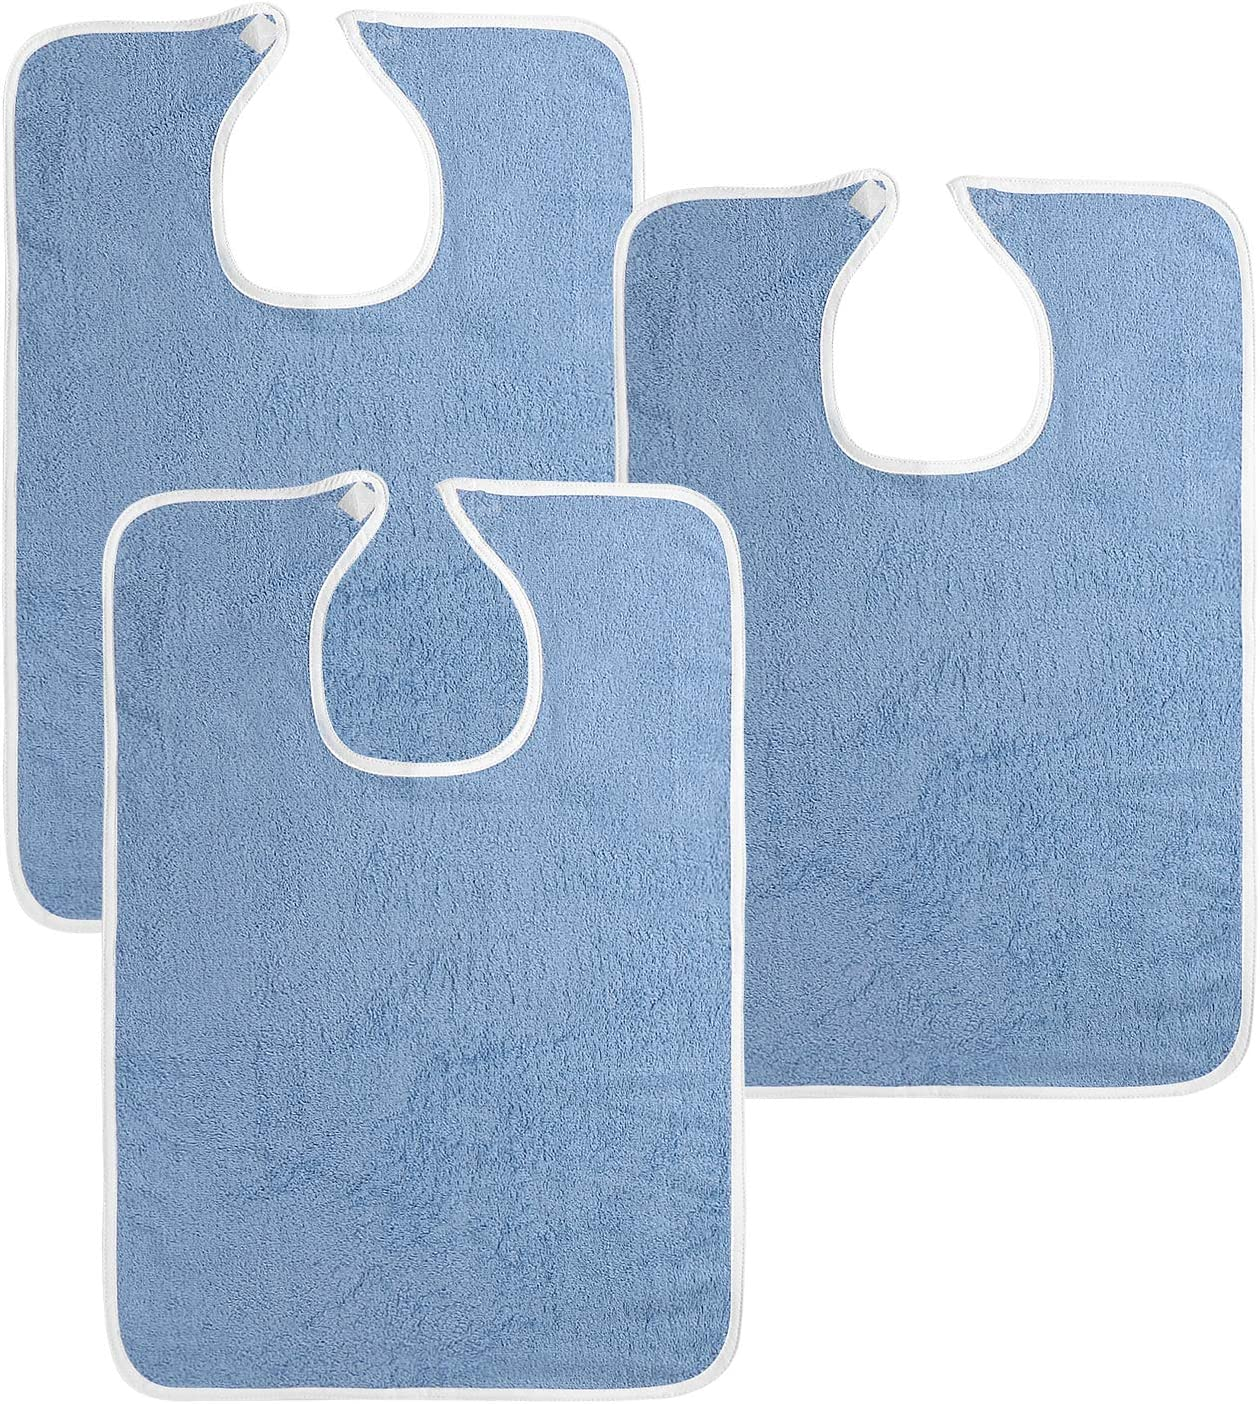 Utopia Towels 3 Pack Premium Quality Adult Bibs (Terry Cloth), Blue, 100% Soft Cotton Reusable and Washable Bibs: Health & Personal Care